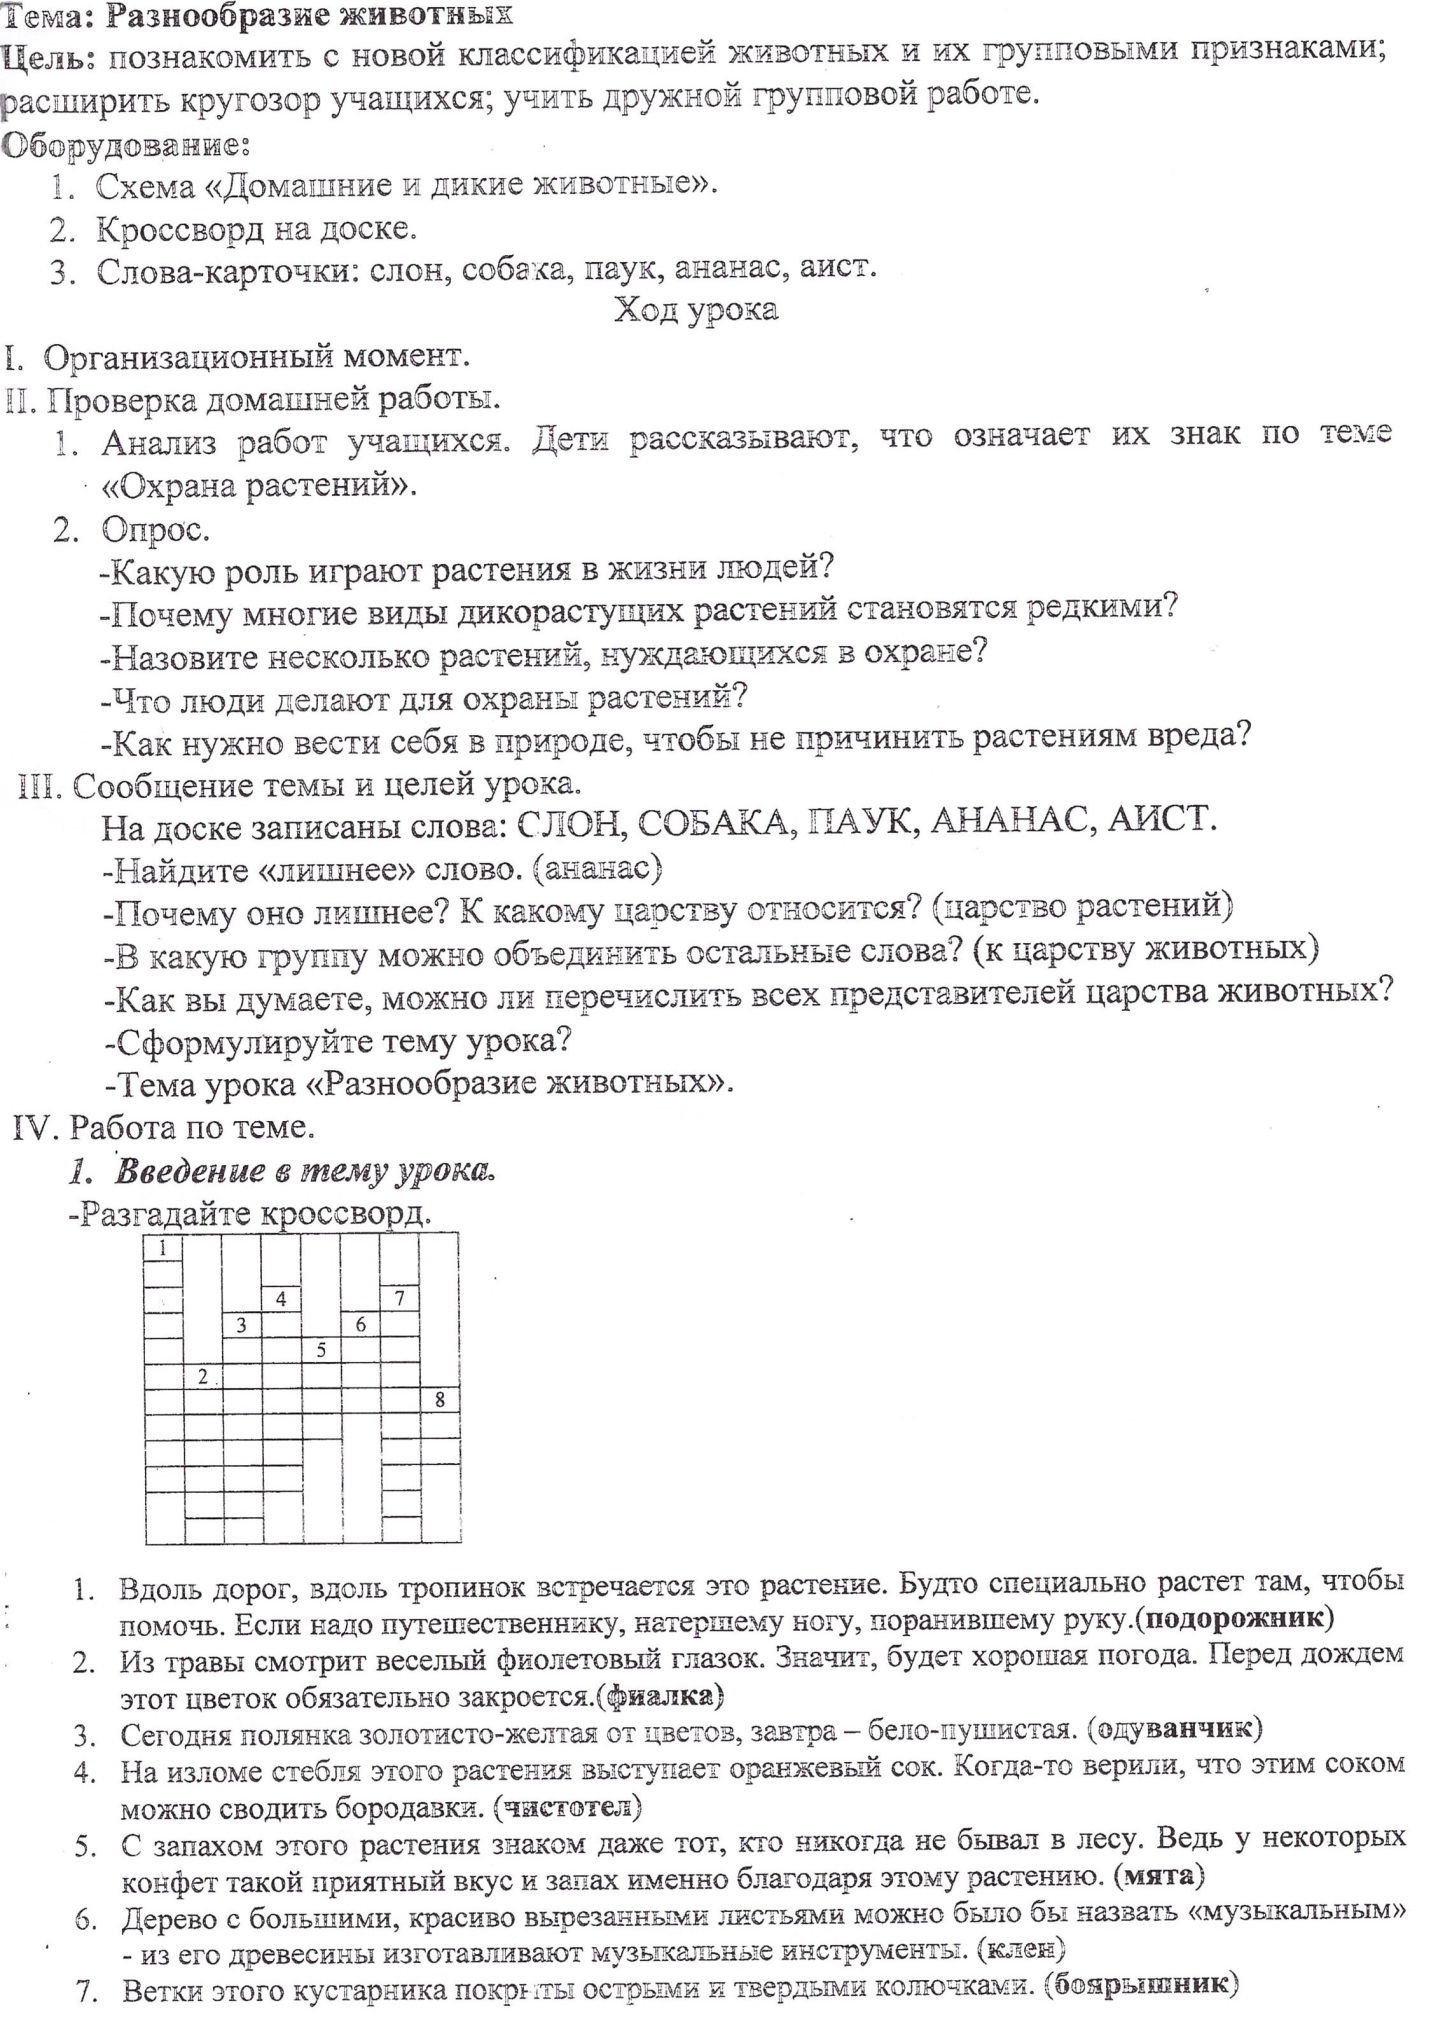 C:\Users\альбина\AppData\Local\Microsoft\Windows\Temporary Internet Files\Content.Word\рж 001.jpg